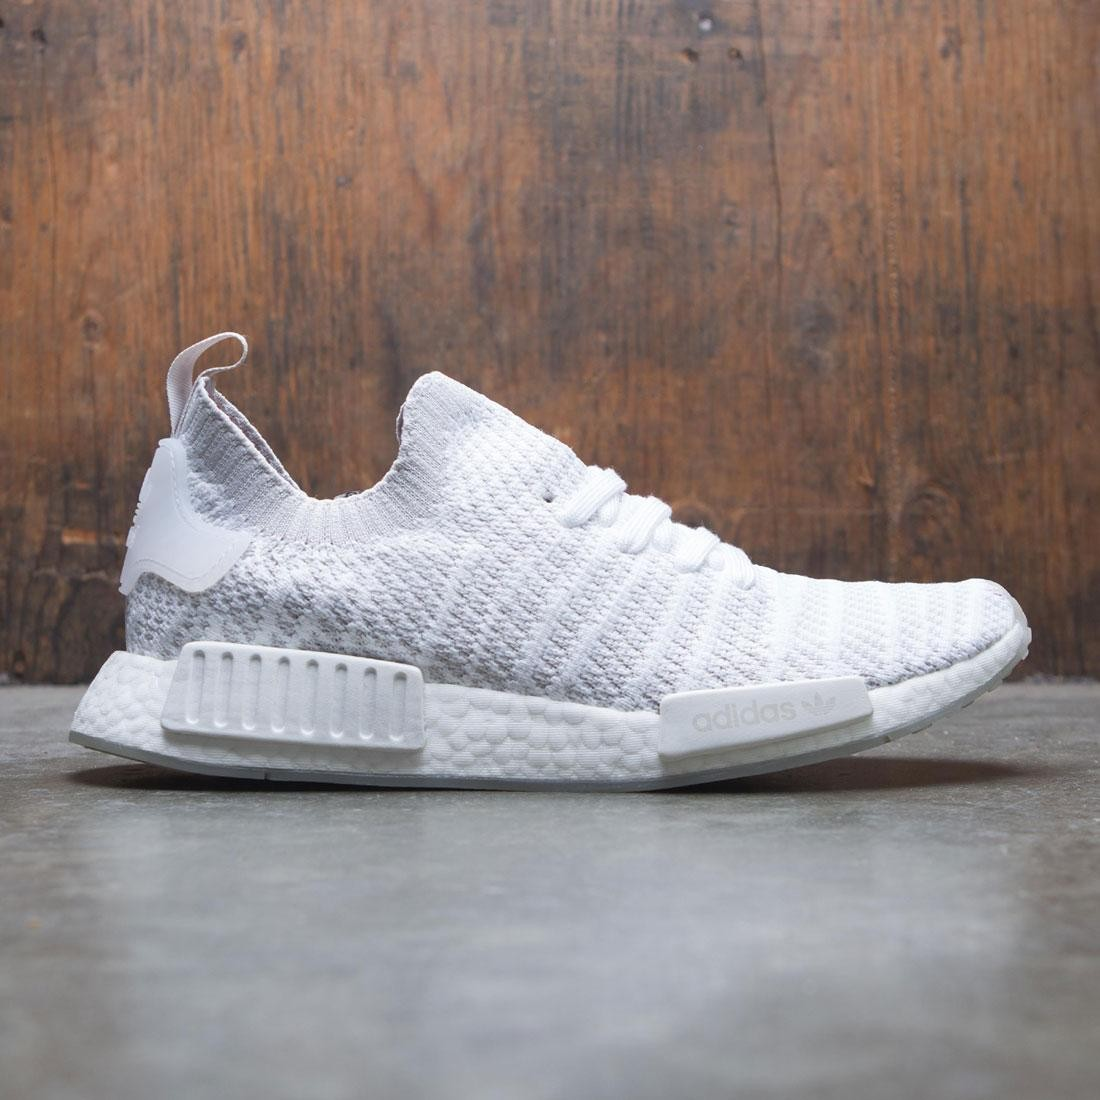 timeless design 8b35d 4f981 Adidas Men NMD R1 STLT Primeknit (white / grey one / solar pink)